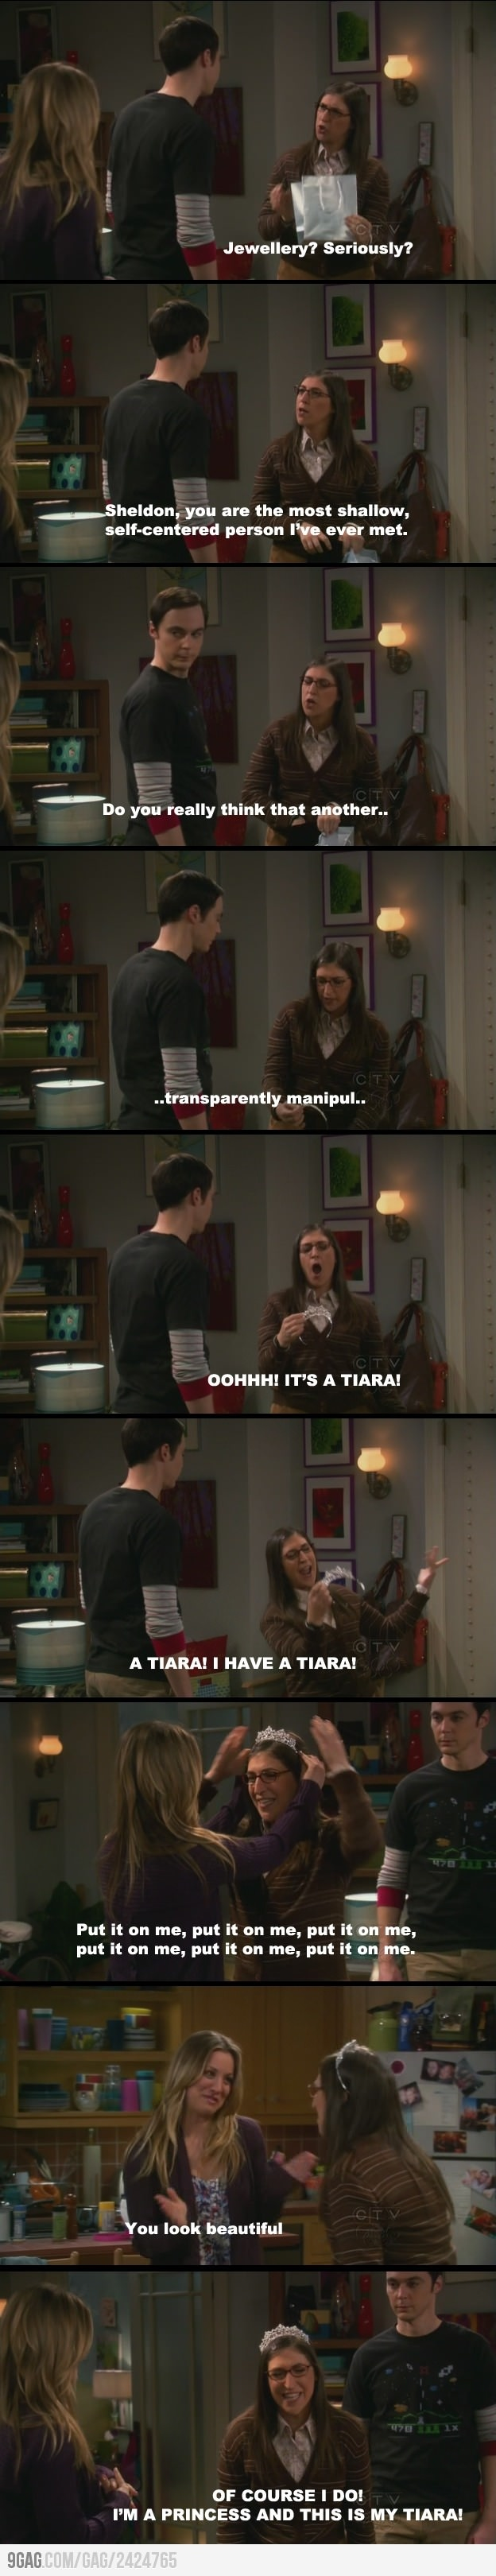 60 best images about Big Bang Theory on Pinterest | Amy ... Big Bang Theory Tiara Gif Images